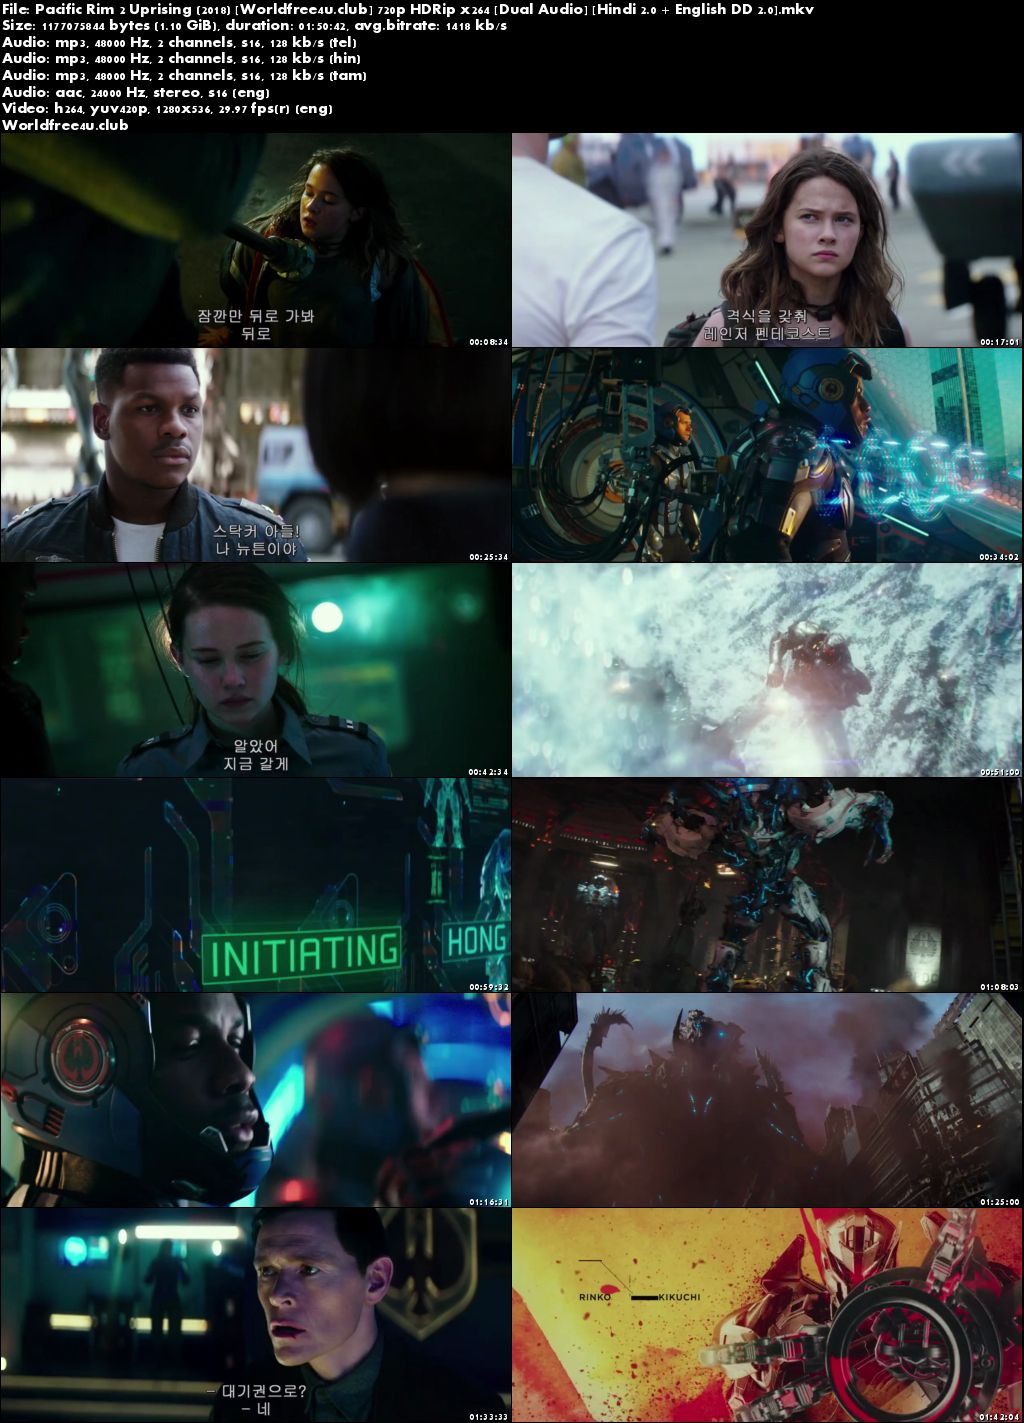 Pacific rim uprising (english) 720p torrent by ualunerig issuu.